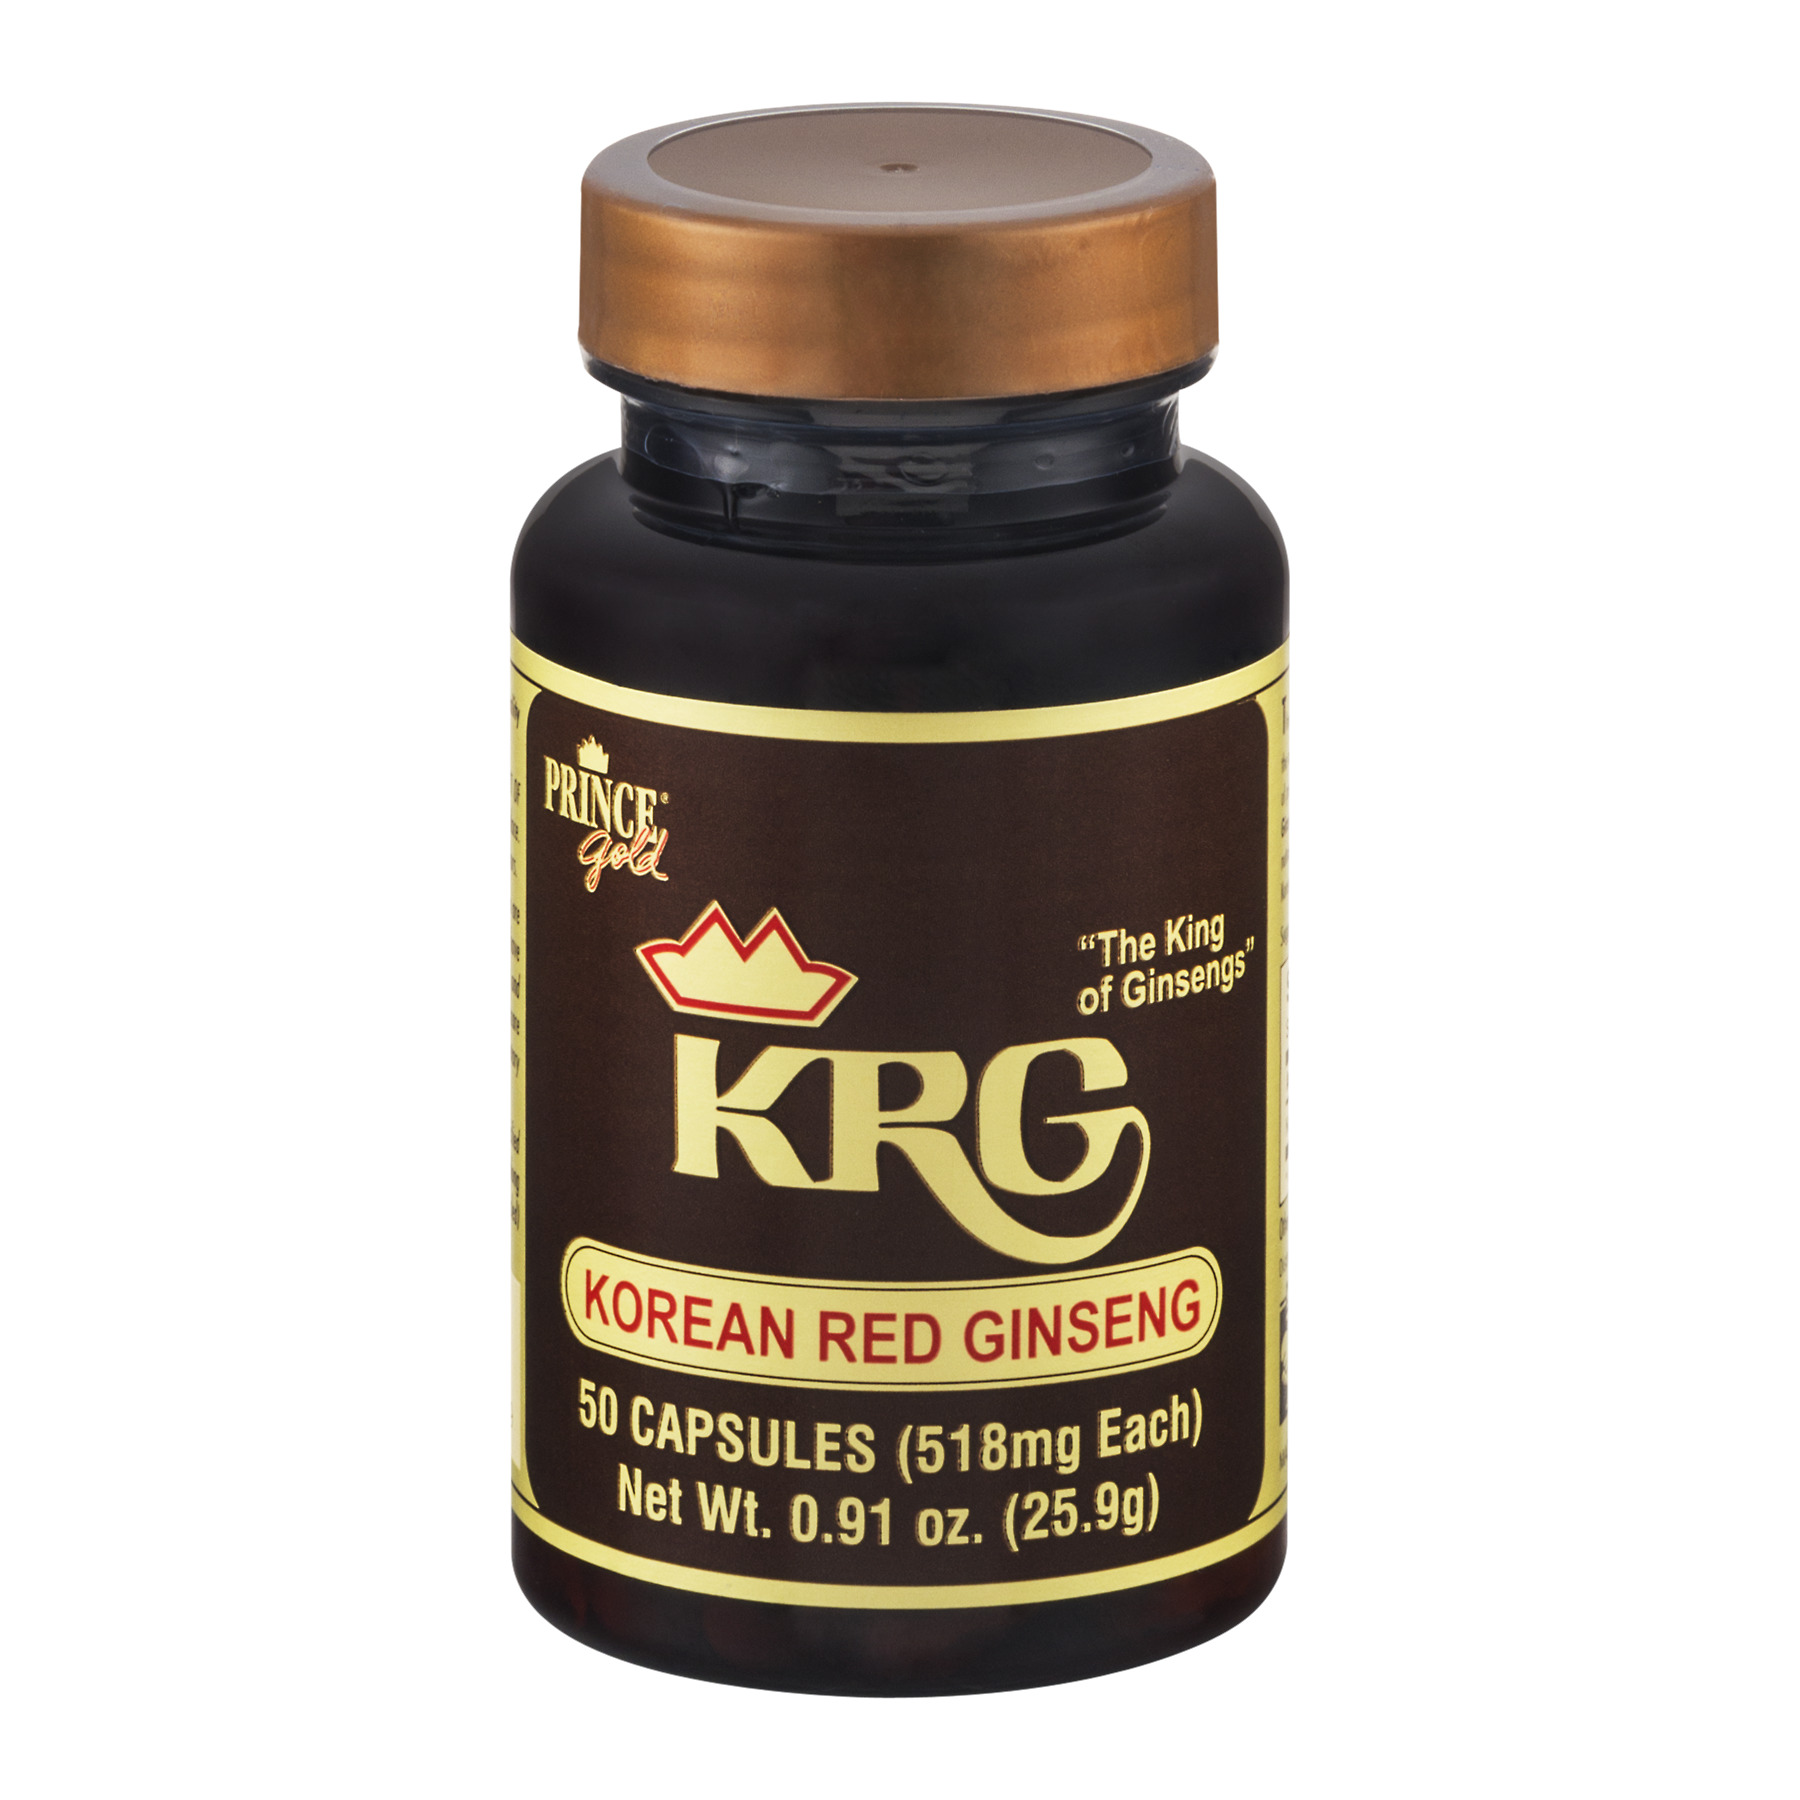 Prince Gold KRG Korean Red Ginseng Capsules - 50 CT0.91 OZ